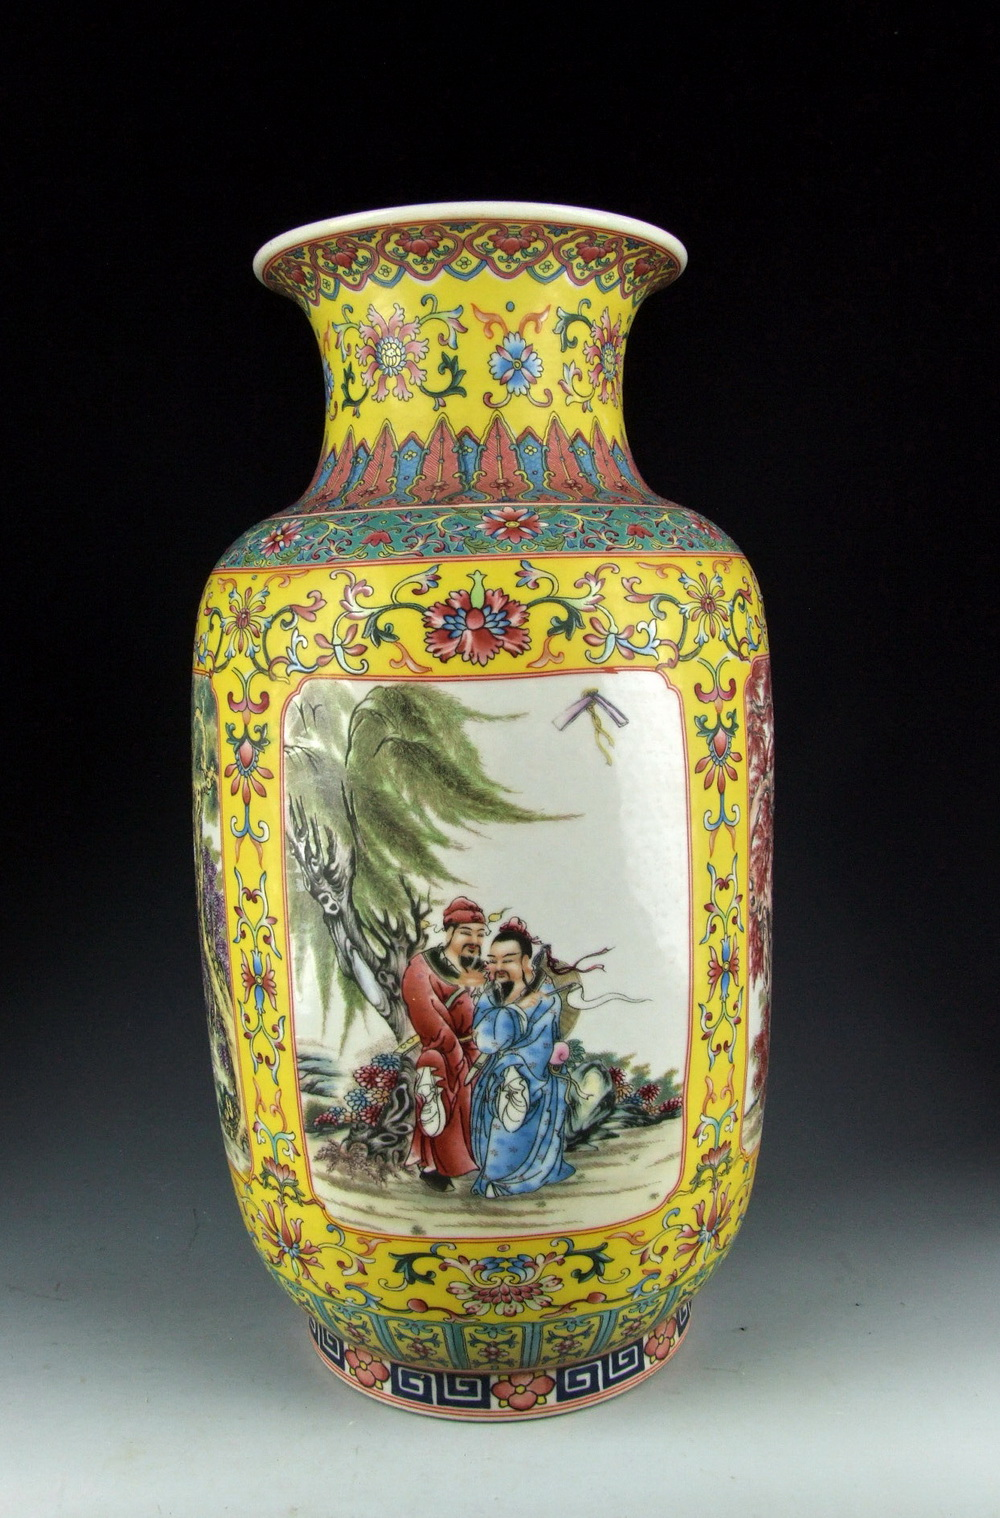 Chinese antique famille rose porcelain vase with chinese eight image is loading chinese antique famille rose porcelain vase with chinese reviewsmspy